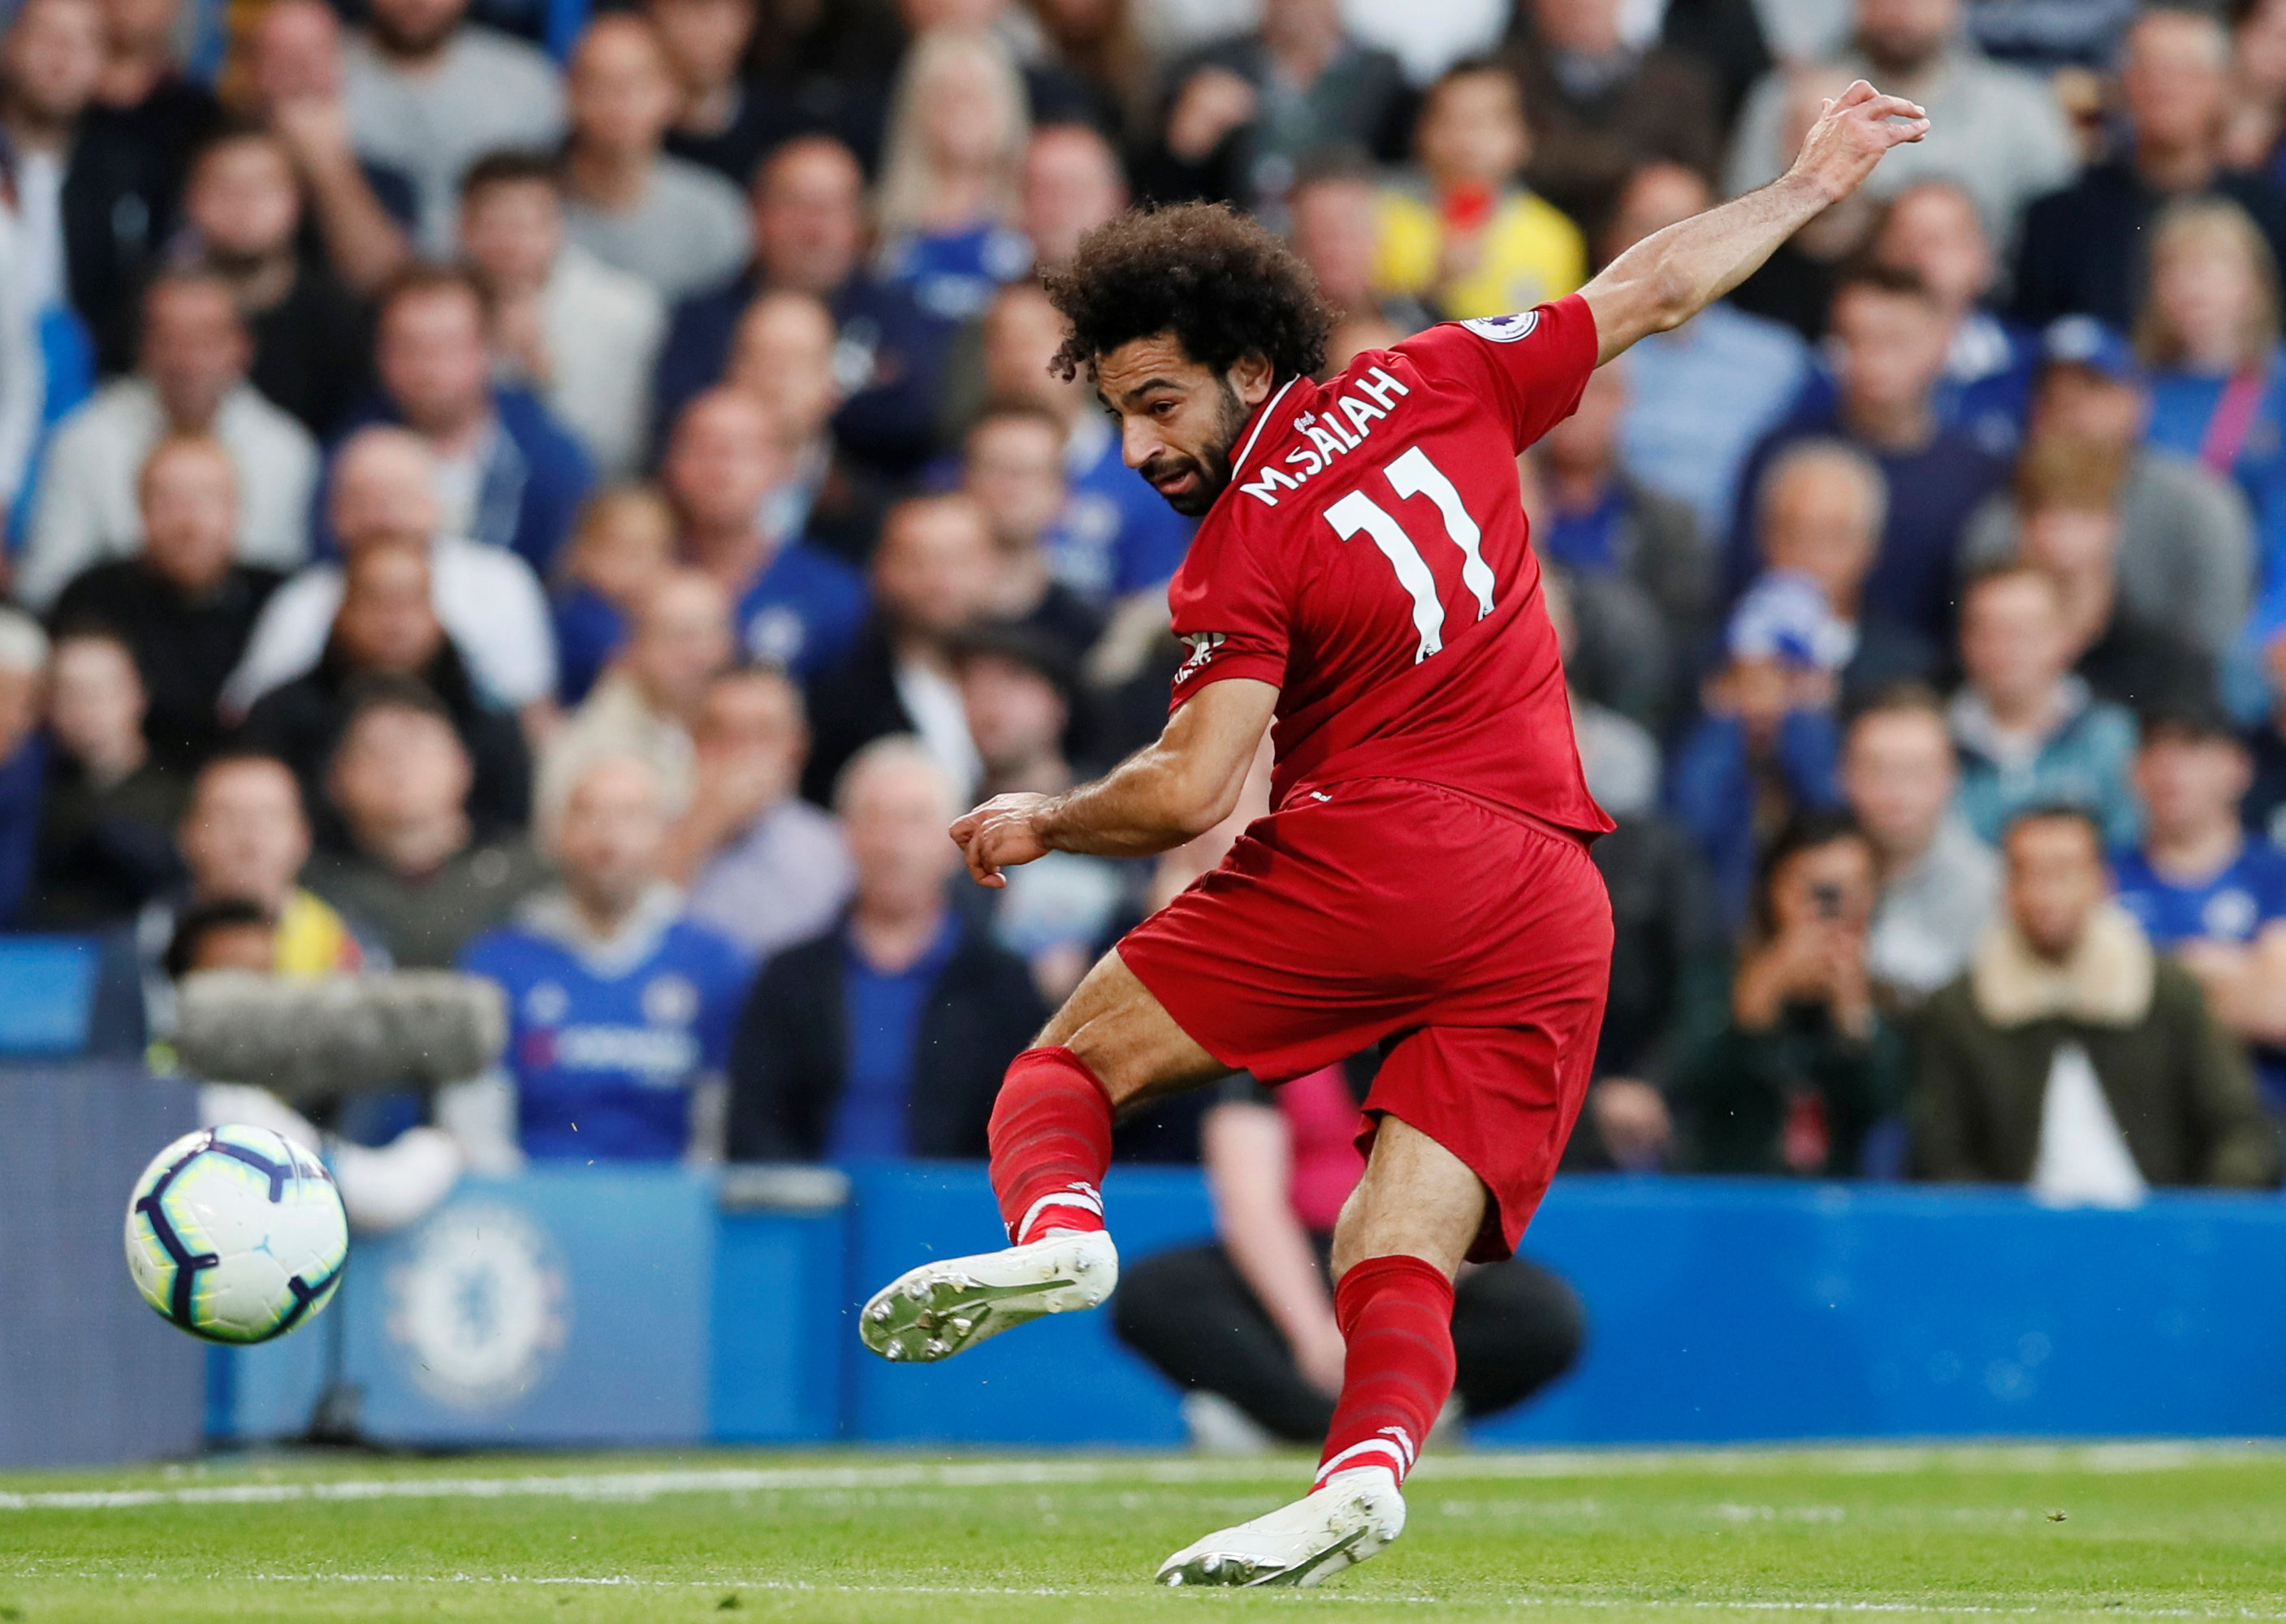 → Which of Mohamed Salah's double-digit hauls was his biggest of the season?